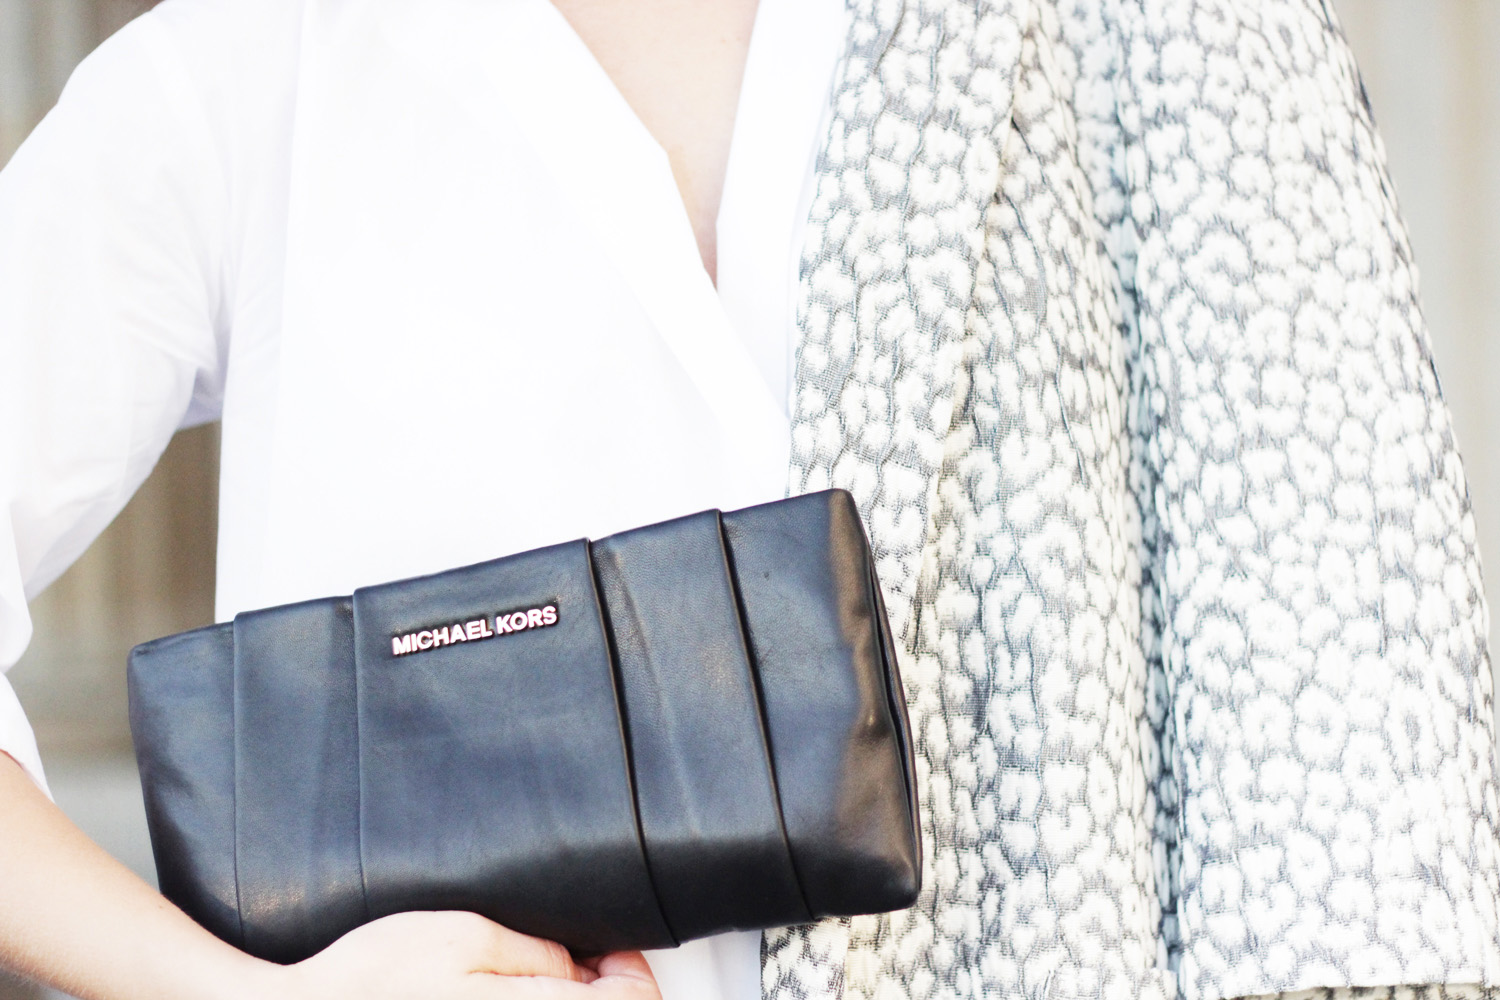 fatimayarie-michaelkors-leather-clutch-whiteblouse-patternedblazer-bfw-img_2463